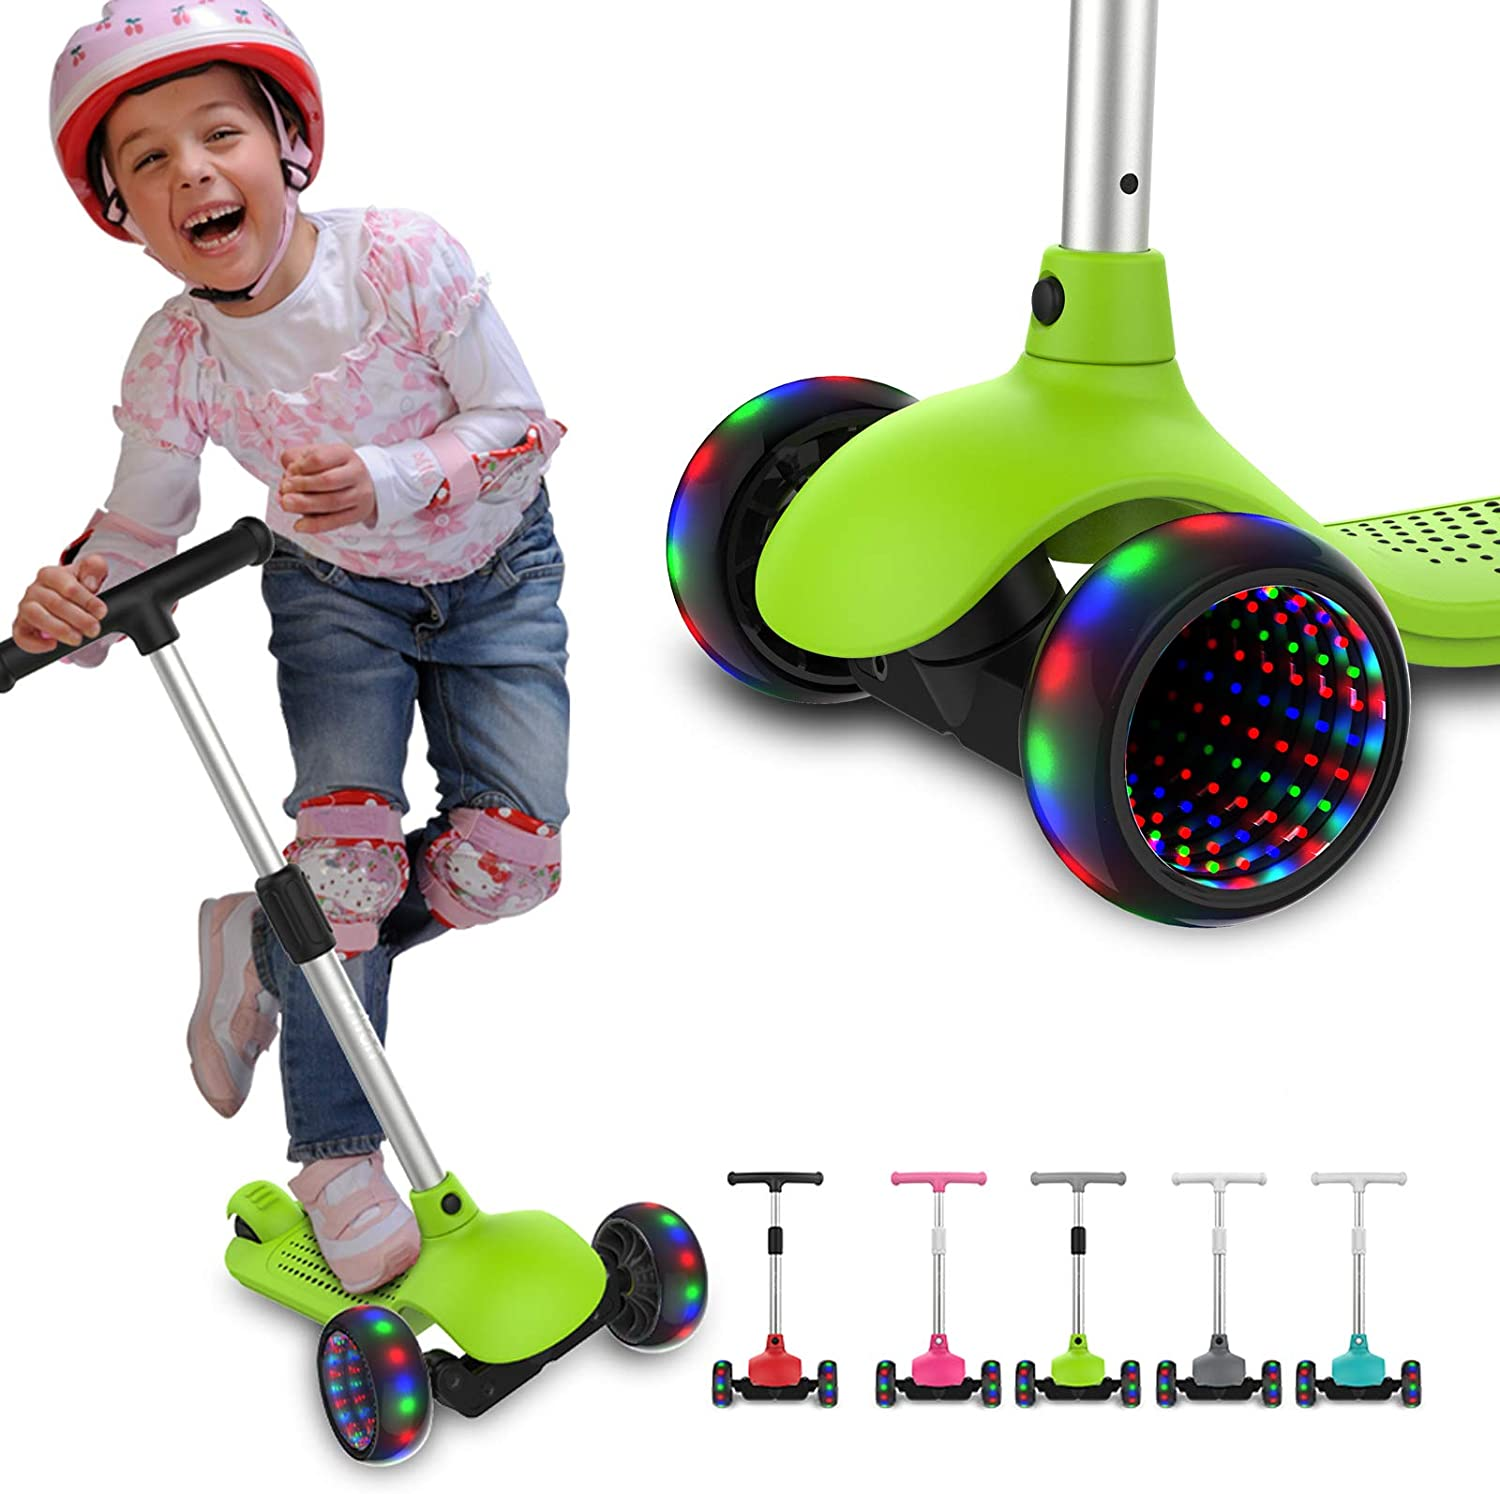 ASITON Children's Scooter 3-Wheel Kick 5 ☆ popular Years 3-6 Bab Old Be super welcome